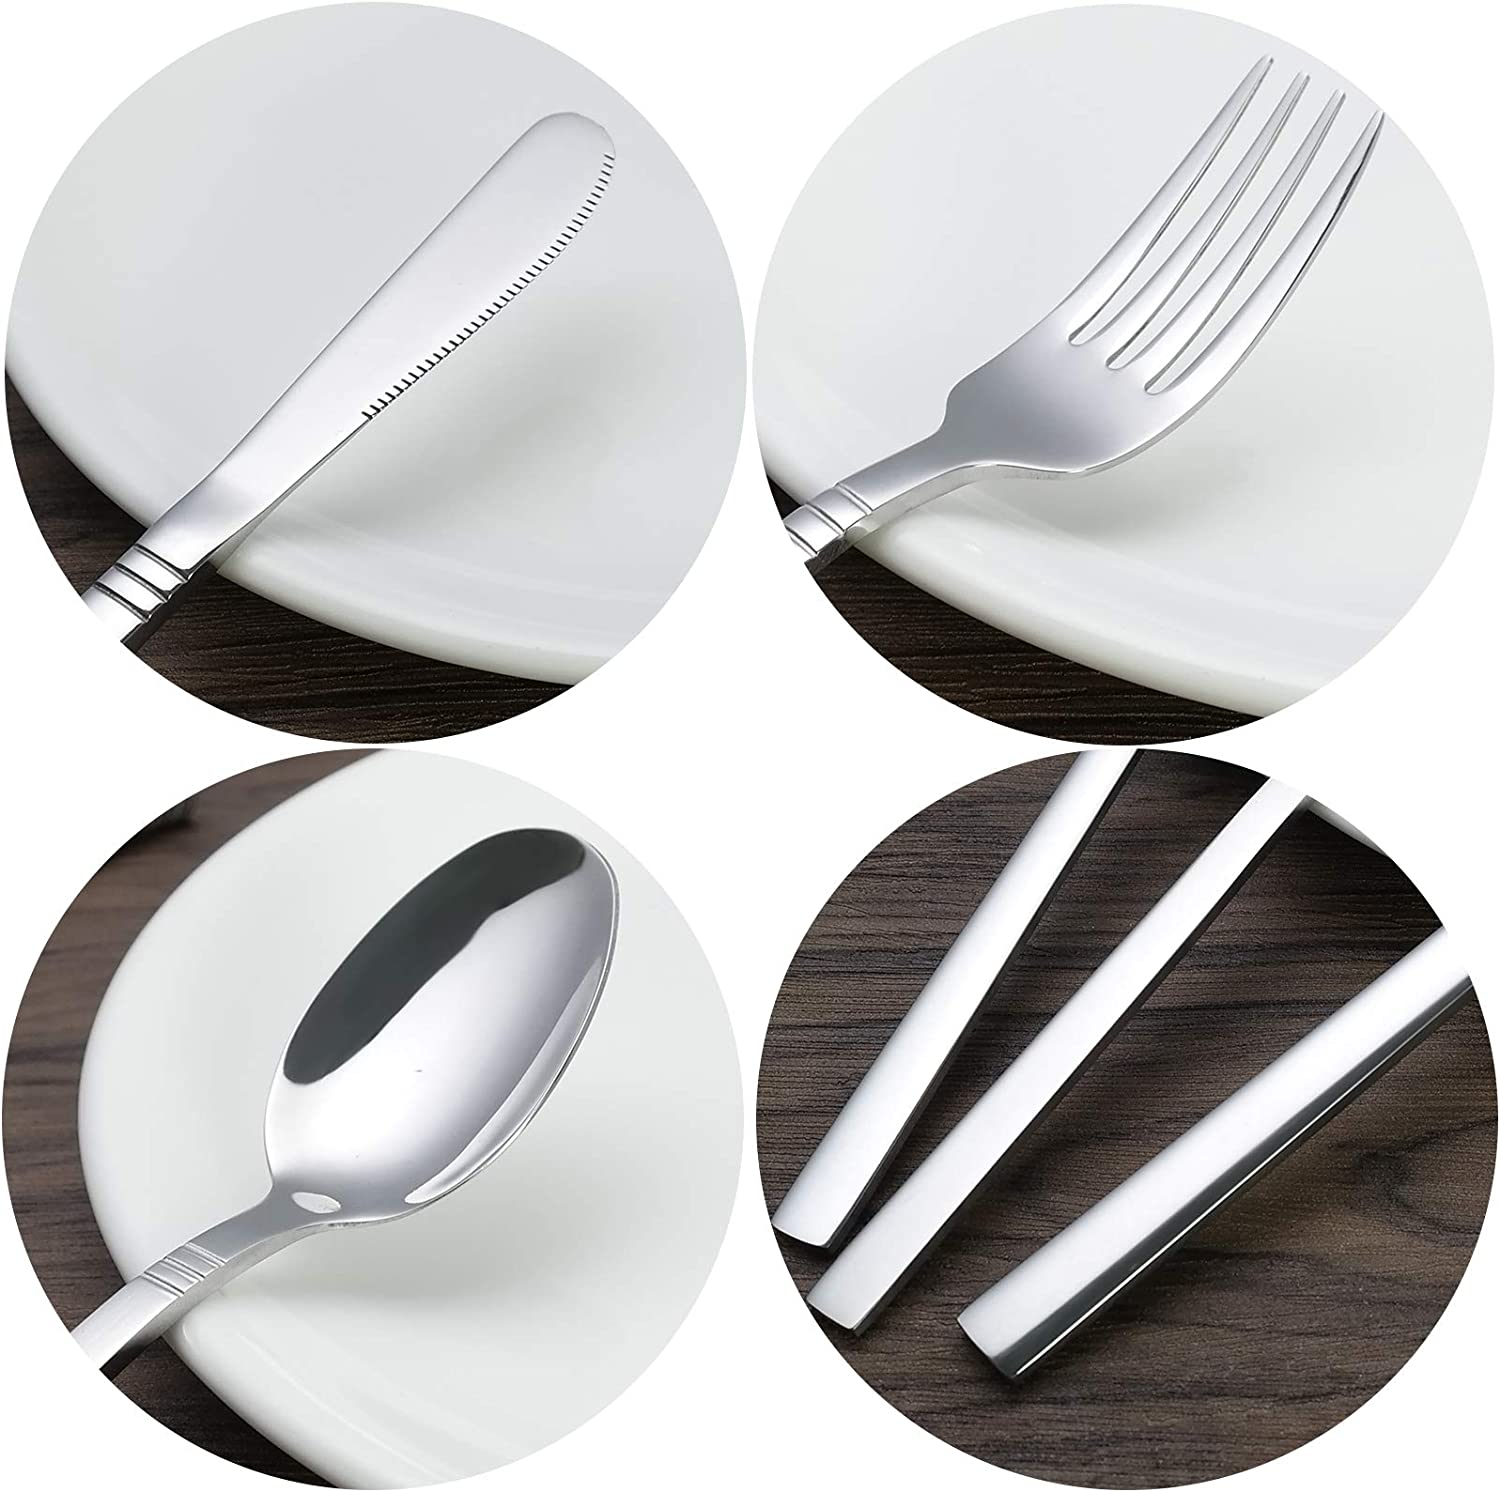 Kiddream 4 Pieces Camping Cutlery Set for 1 Stainless Steel Travel Cutlery Set With Case